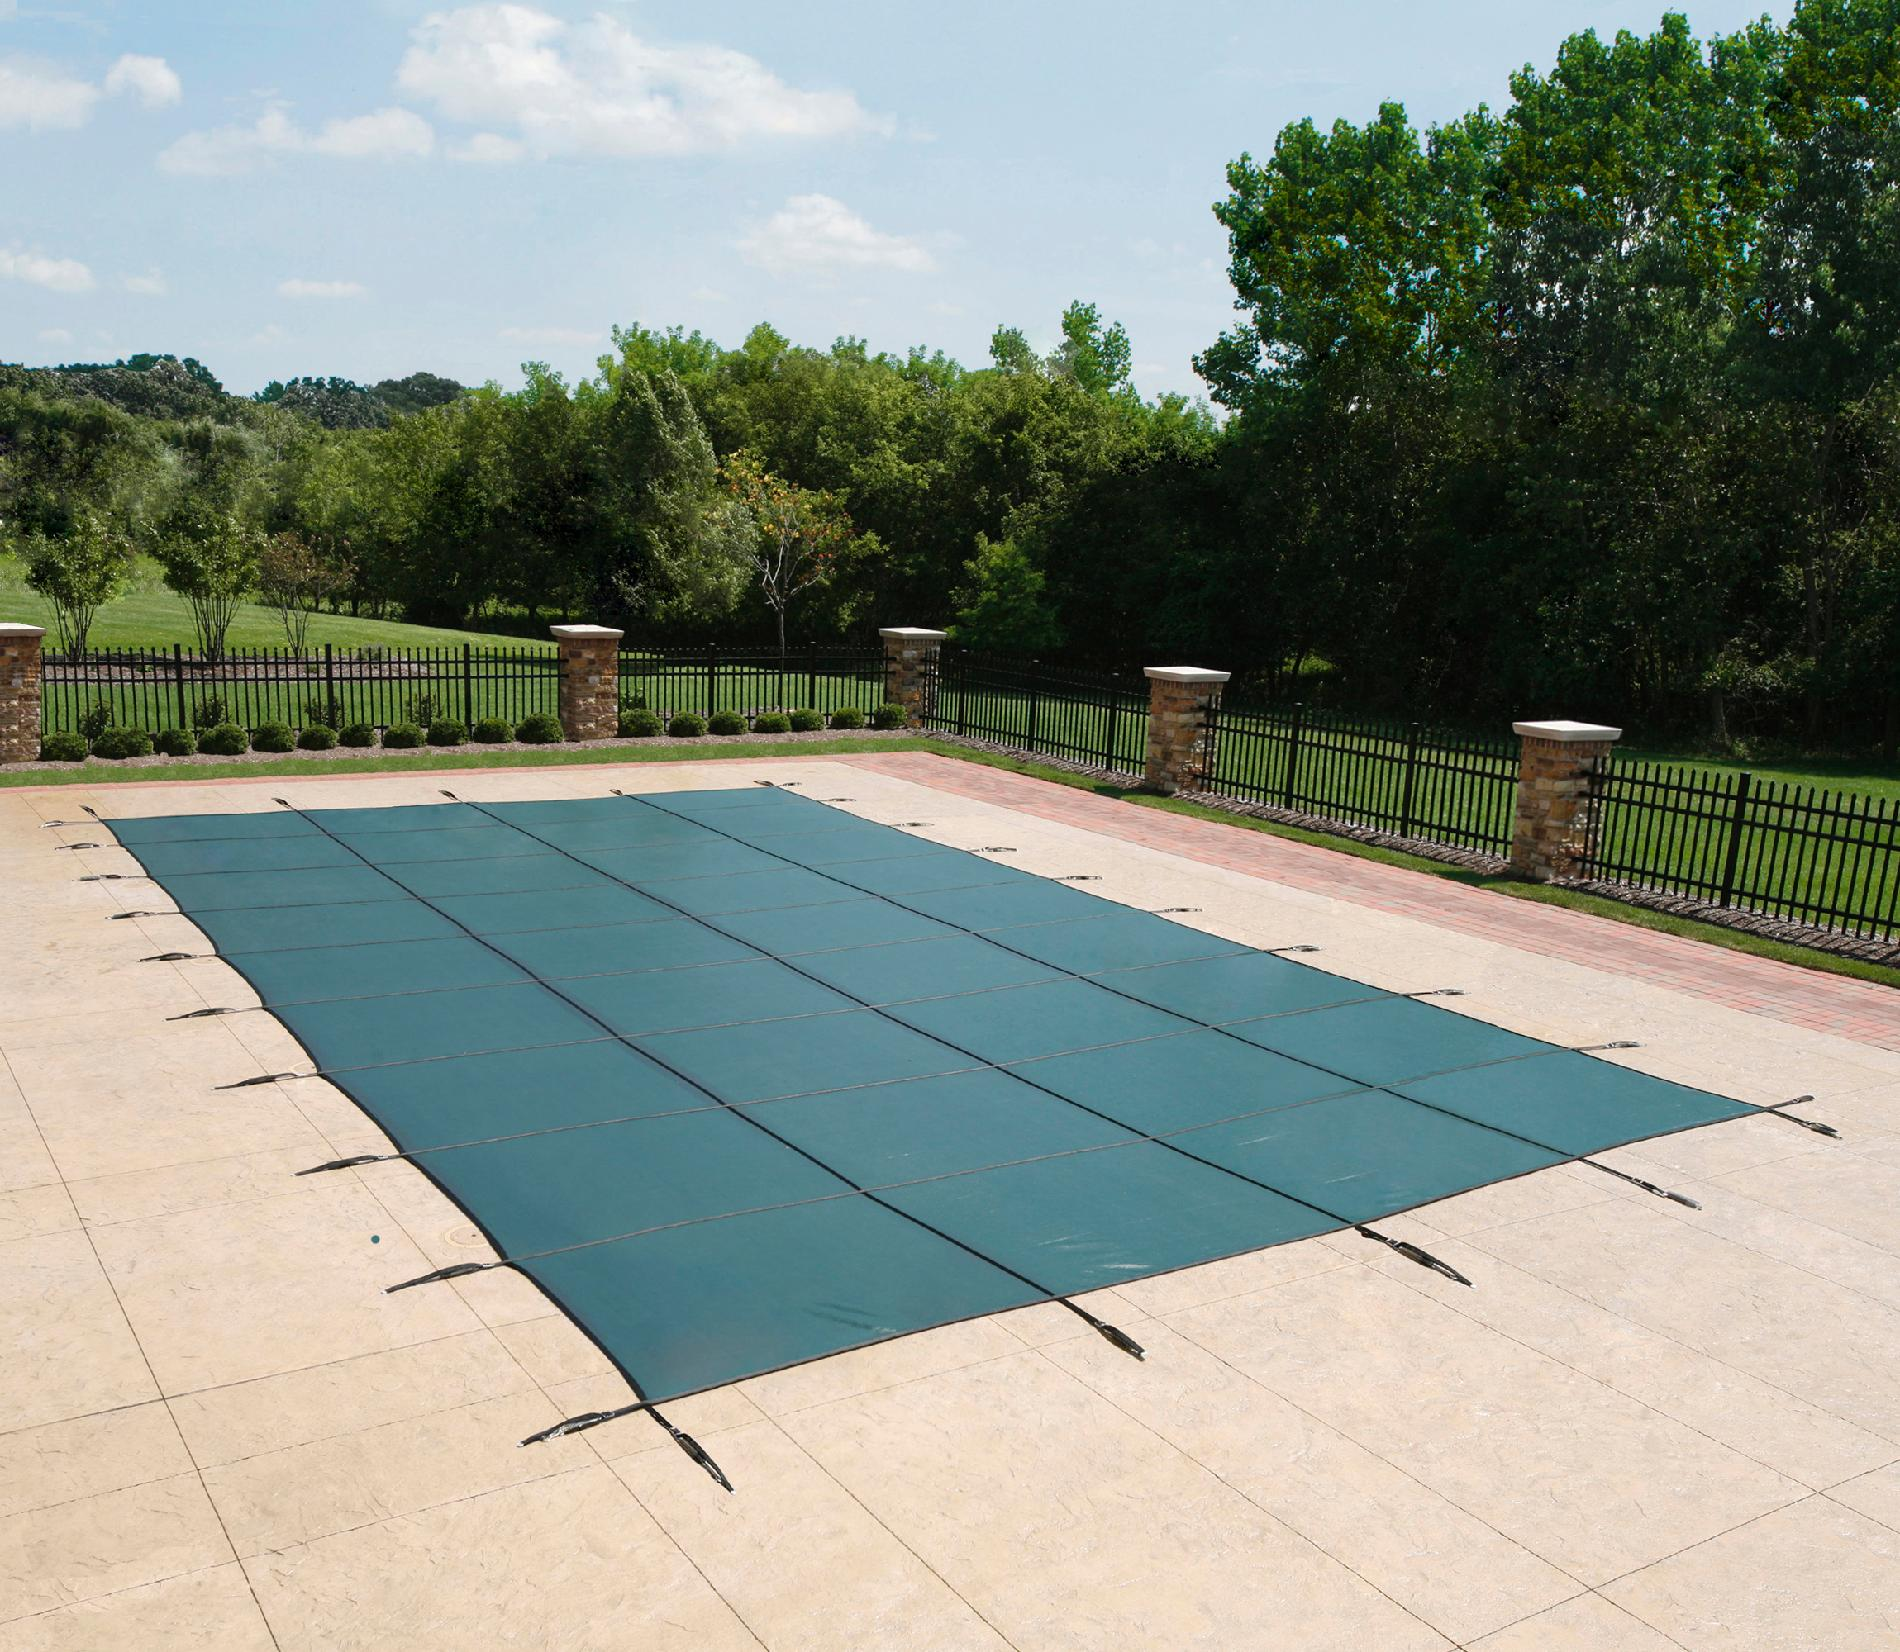 12 yr mesh safety cover for 16 39 x 36 39 rectangle pool Rectangle vs round pool